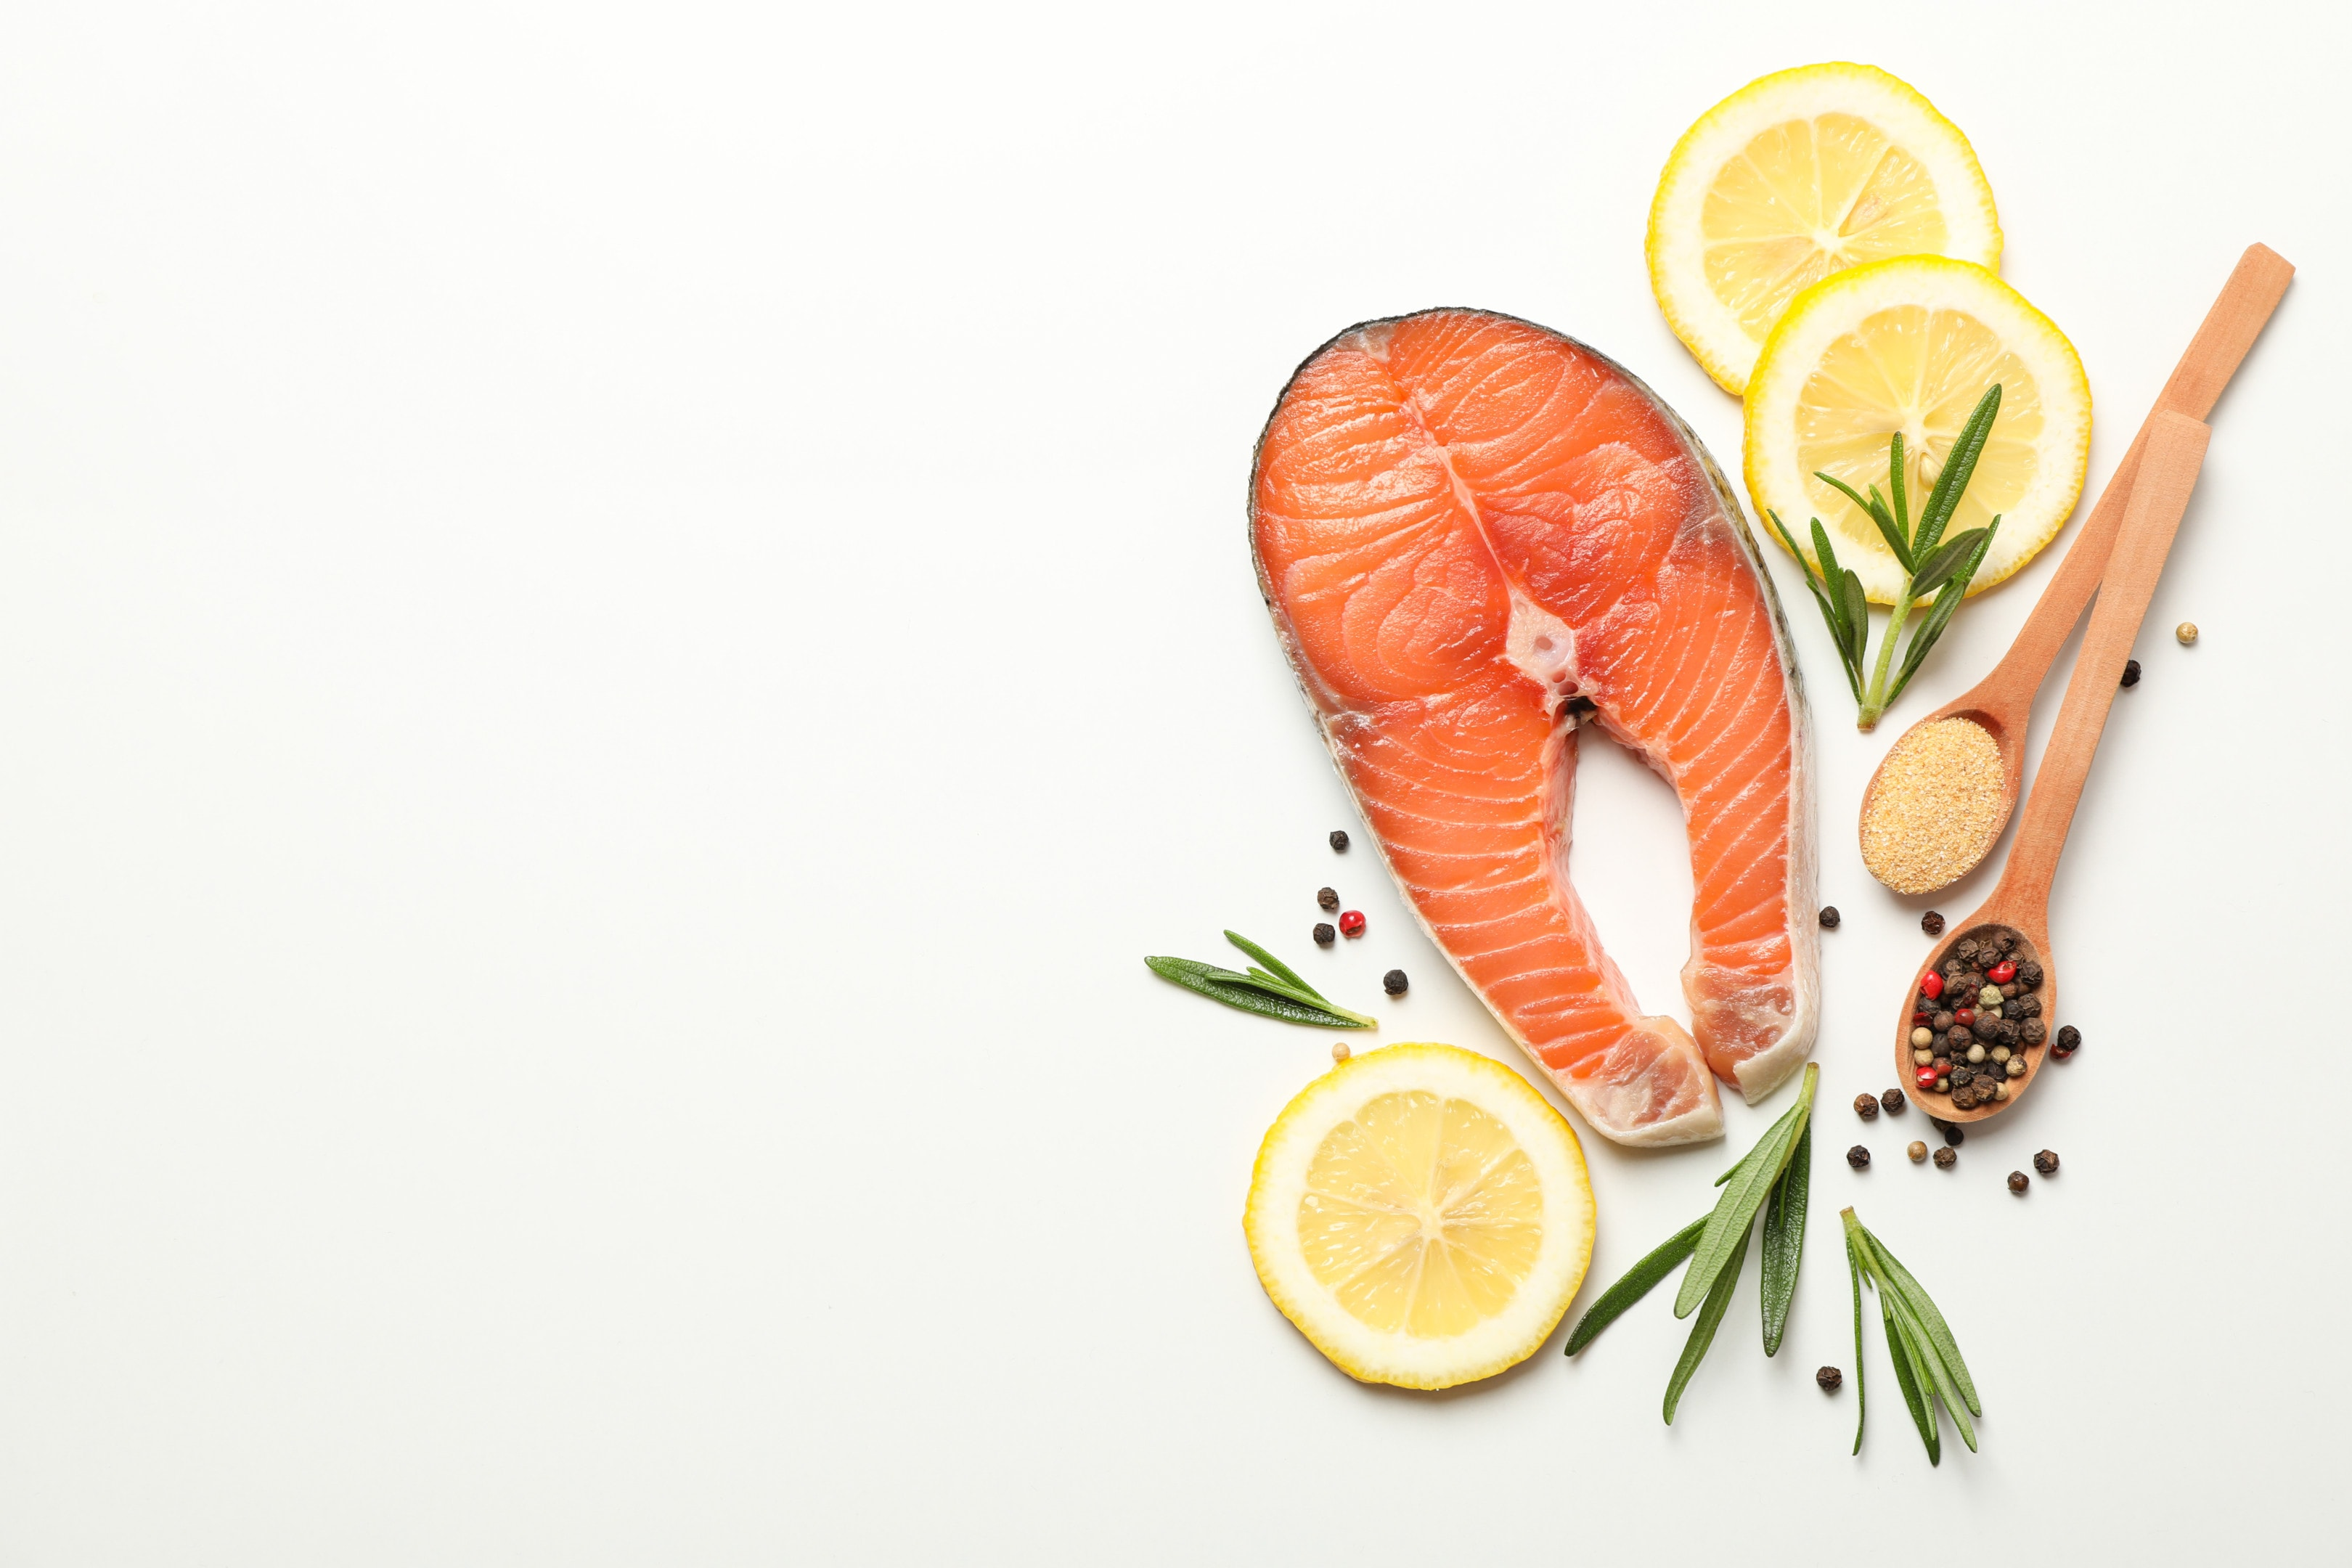 Salmon and spices on white background